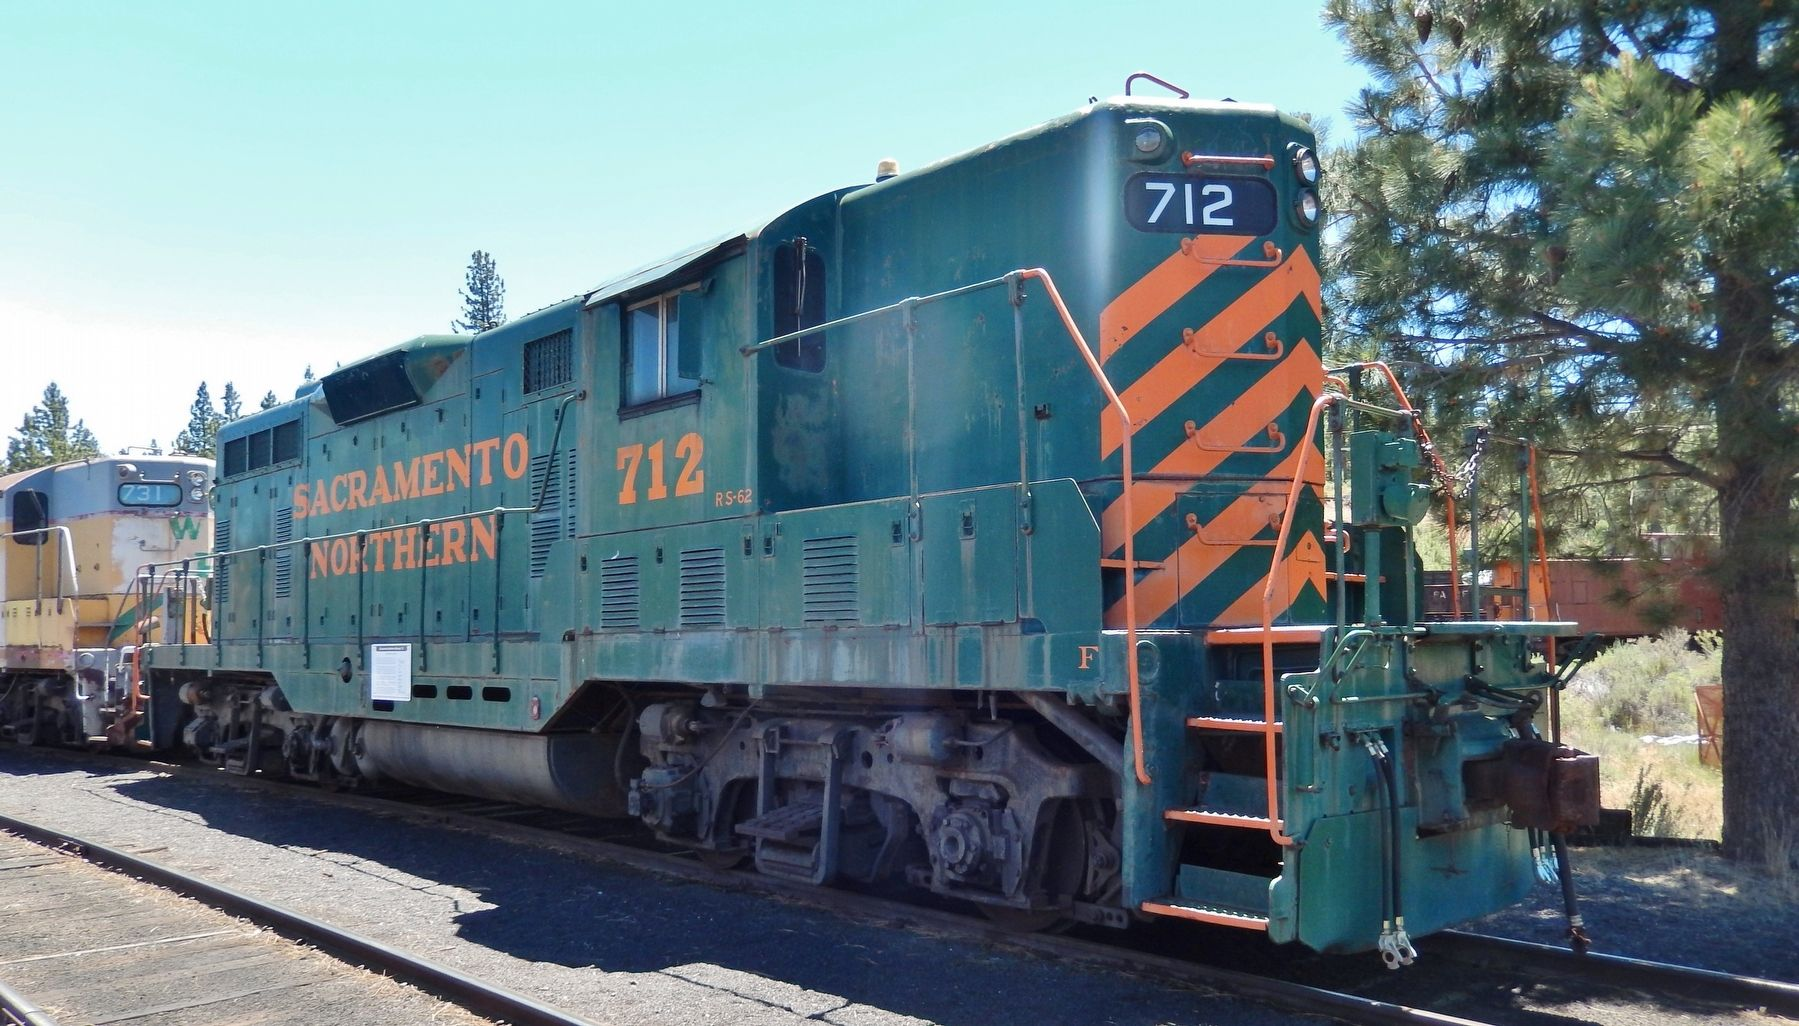 Sacramento Northern Locomotive #712 image. Click for full size.